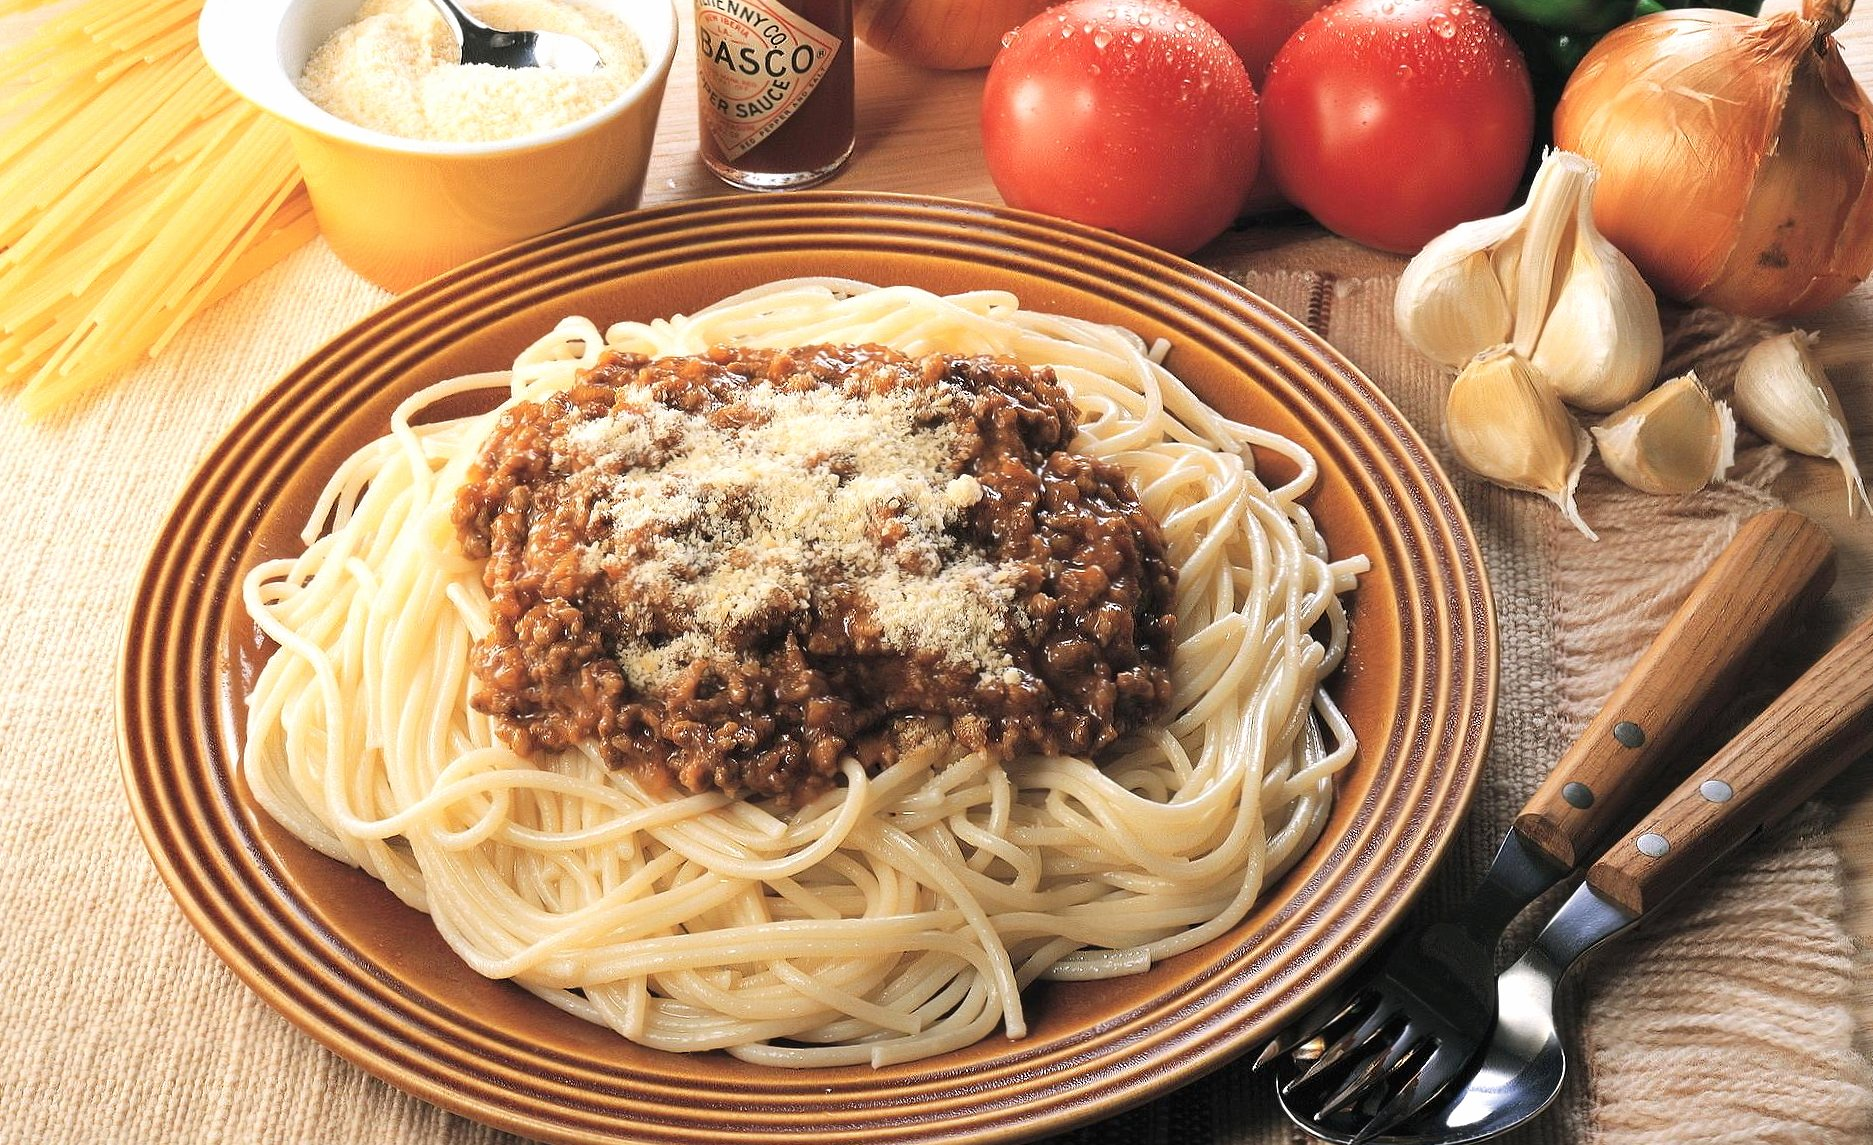 Spaghetti with meat ragout wallpapers HD quality